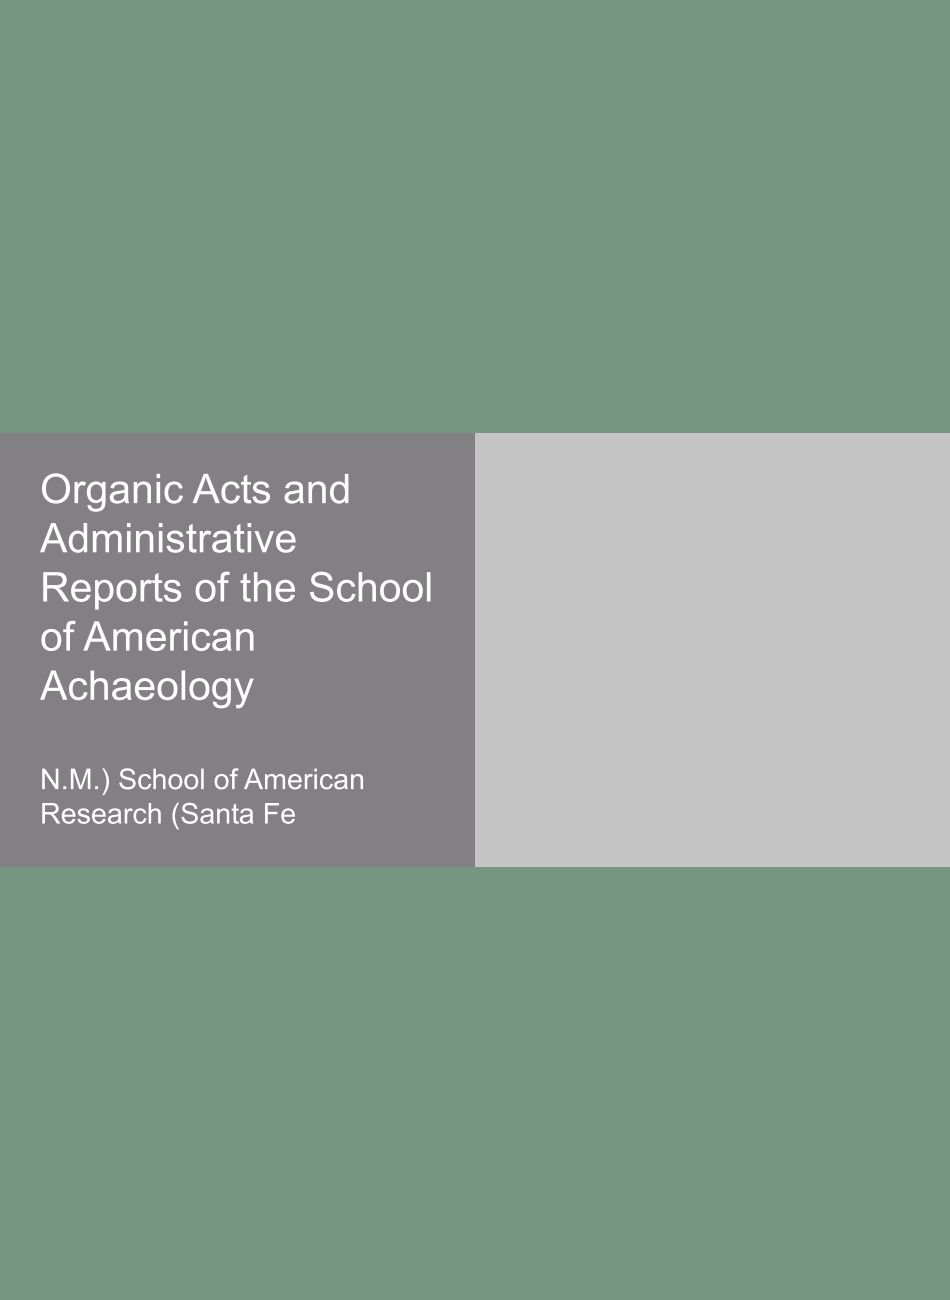 Download Organic Acts and Administrative Reports of the School of American Achaeology Text fb2 ebook